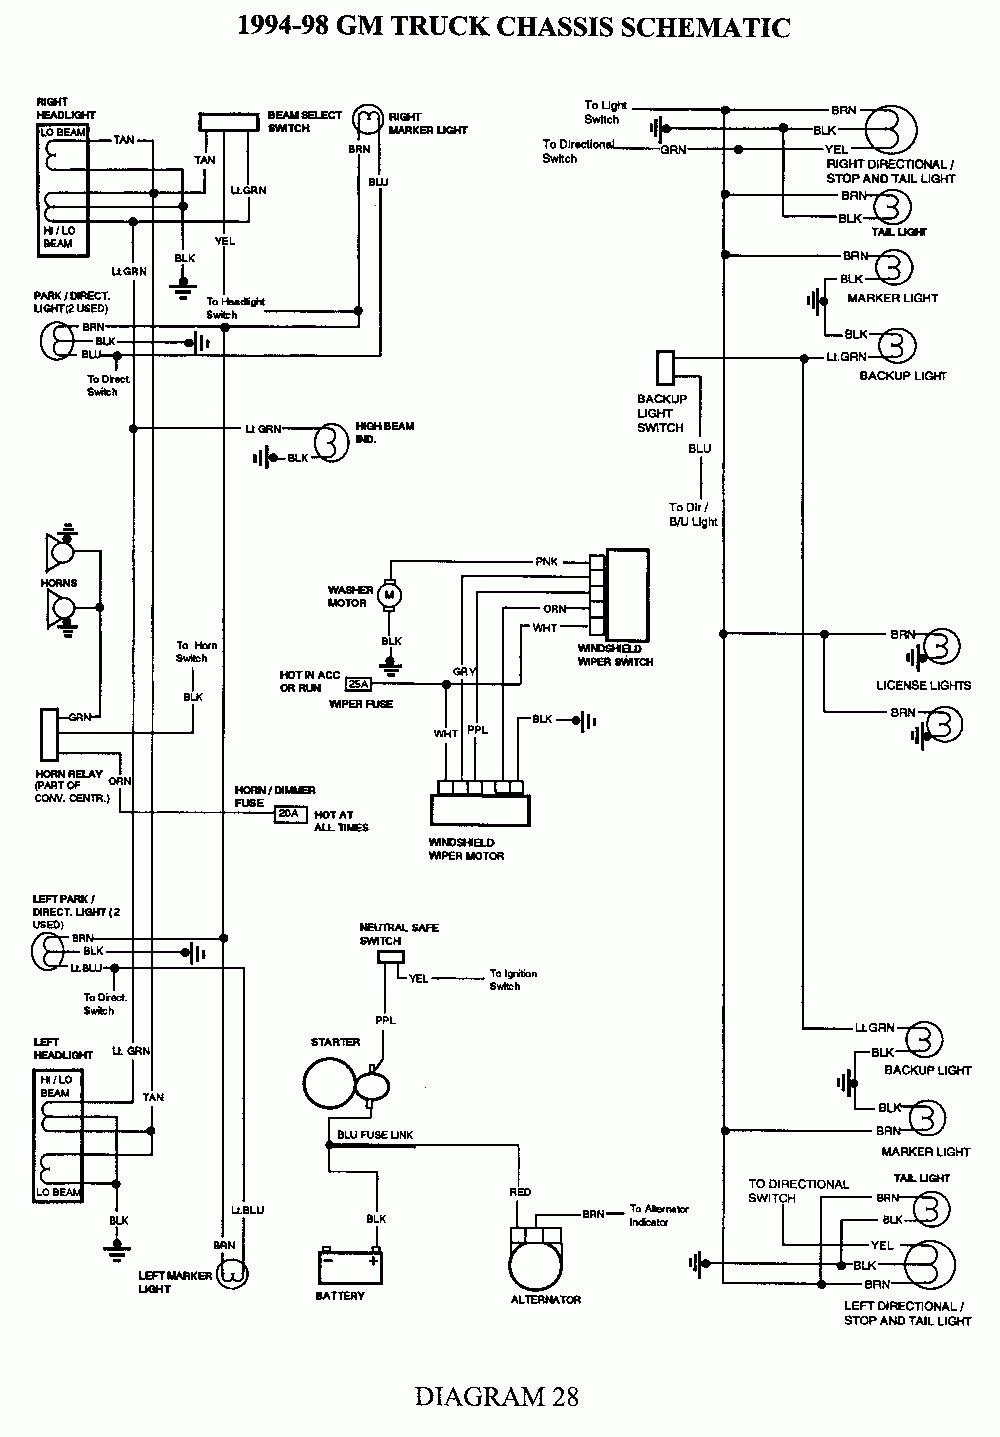 gmc tail light wiring diagram detailed schematic diagrams turn signal wiring schematic 2003 chevy s10 tail lights inspirational wiring diagram image gmc wiper motor wiring diagram gmc tail light wiring diagram